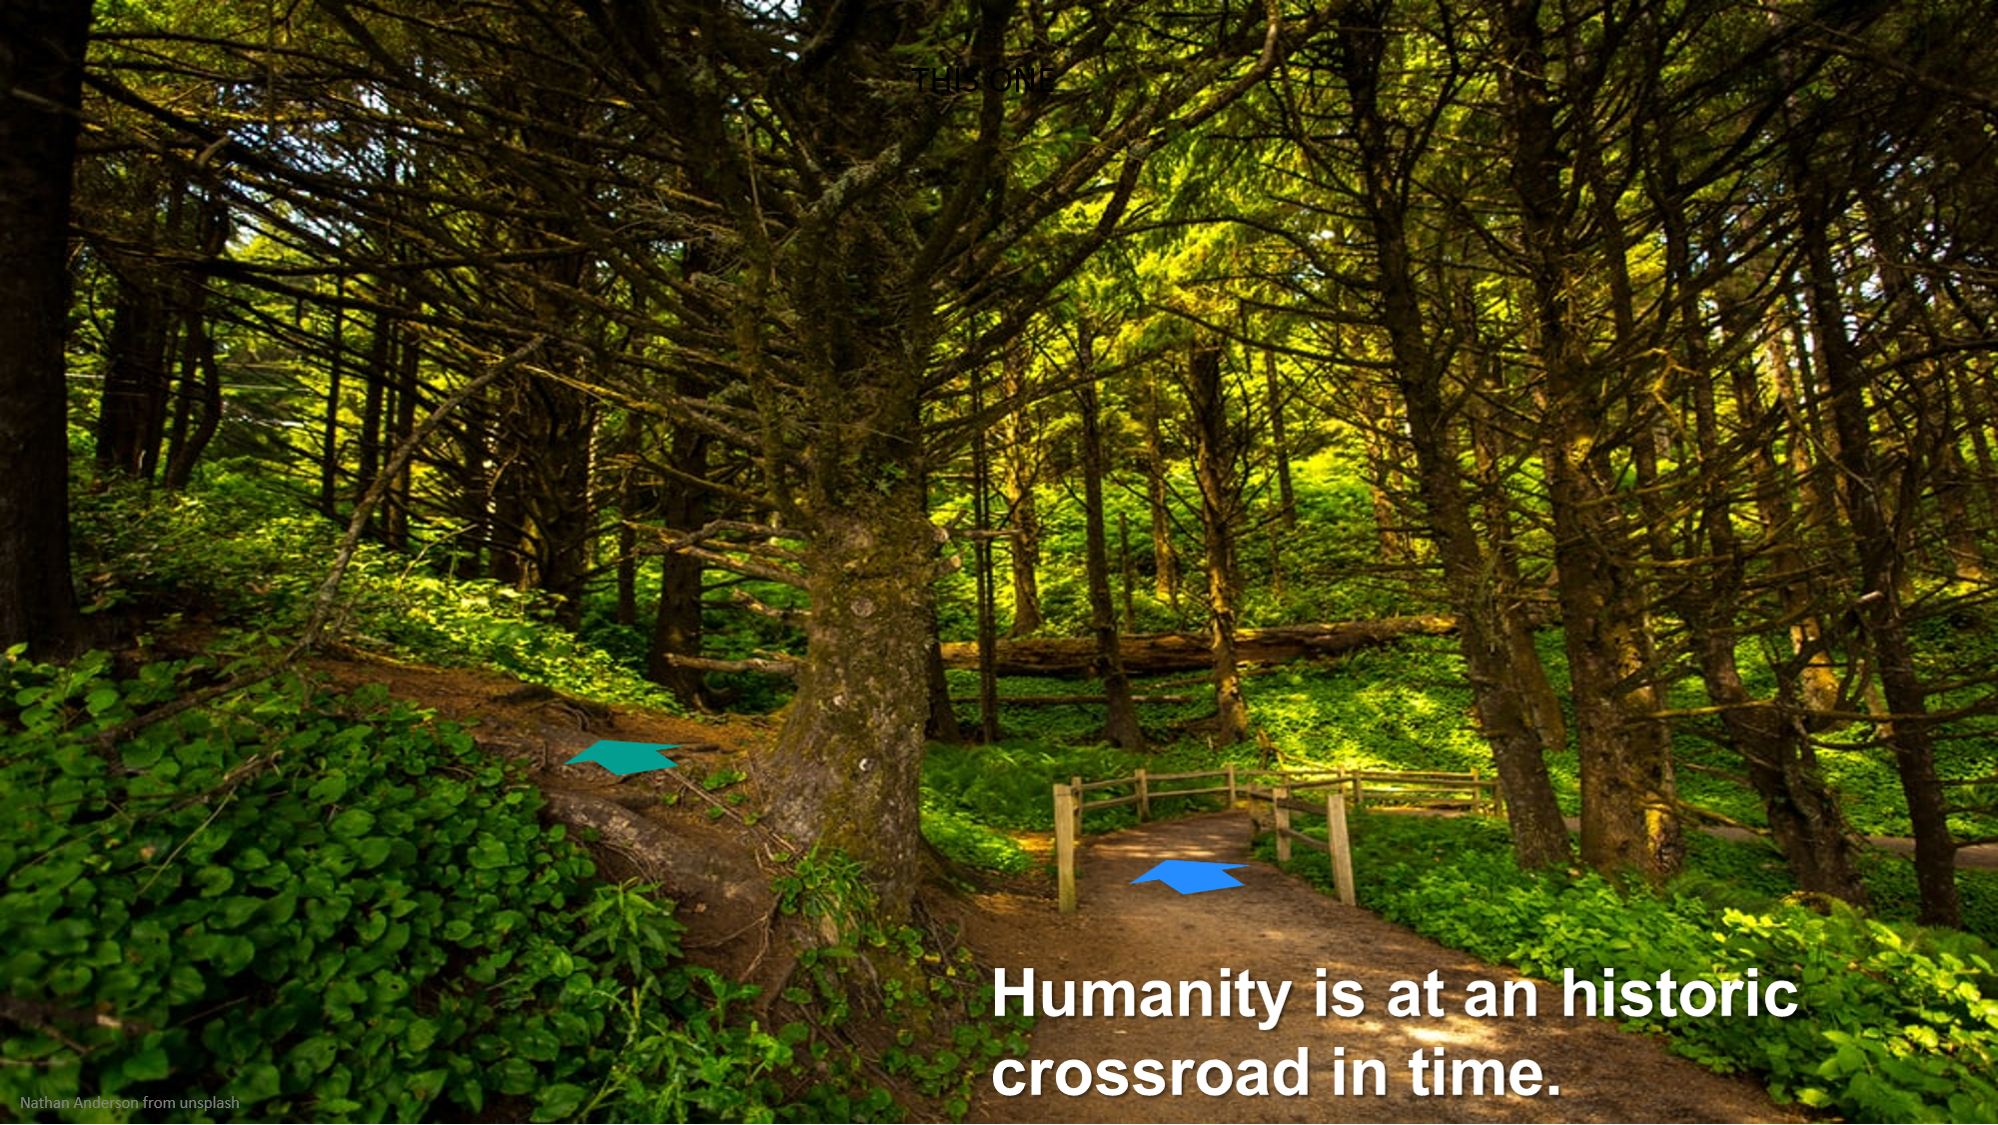 Humanity is at an historic crossroad in time.